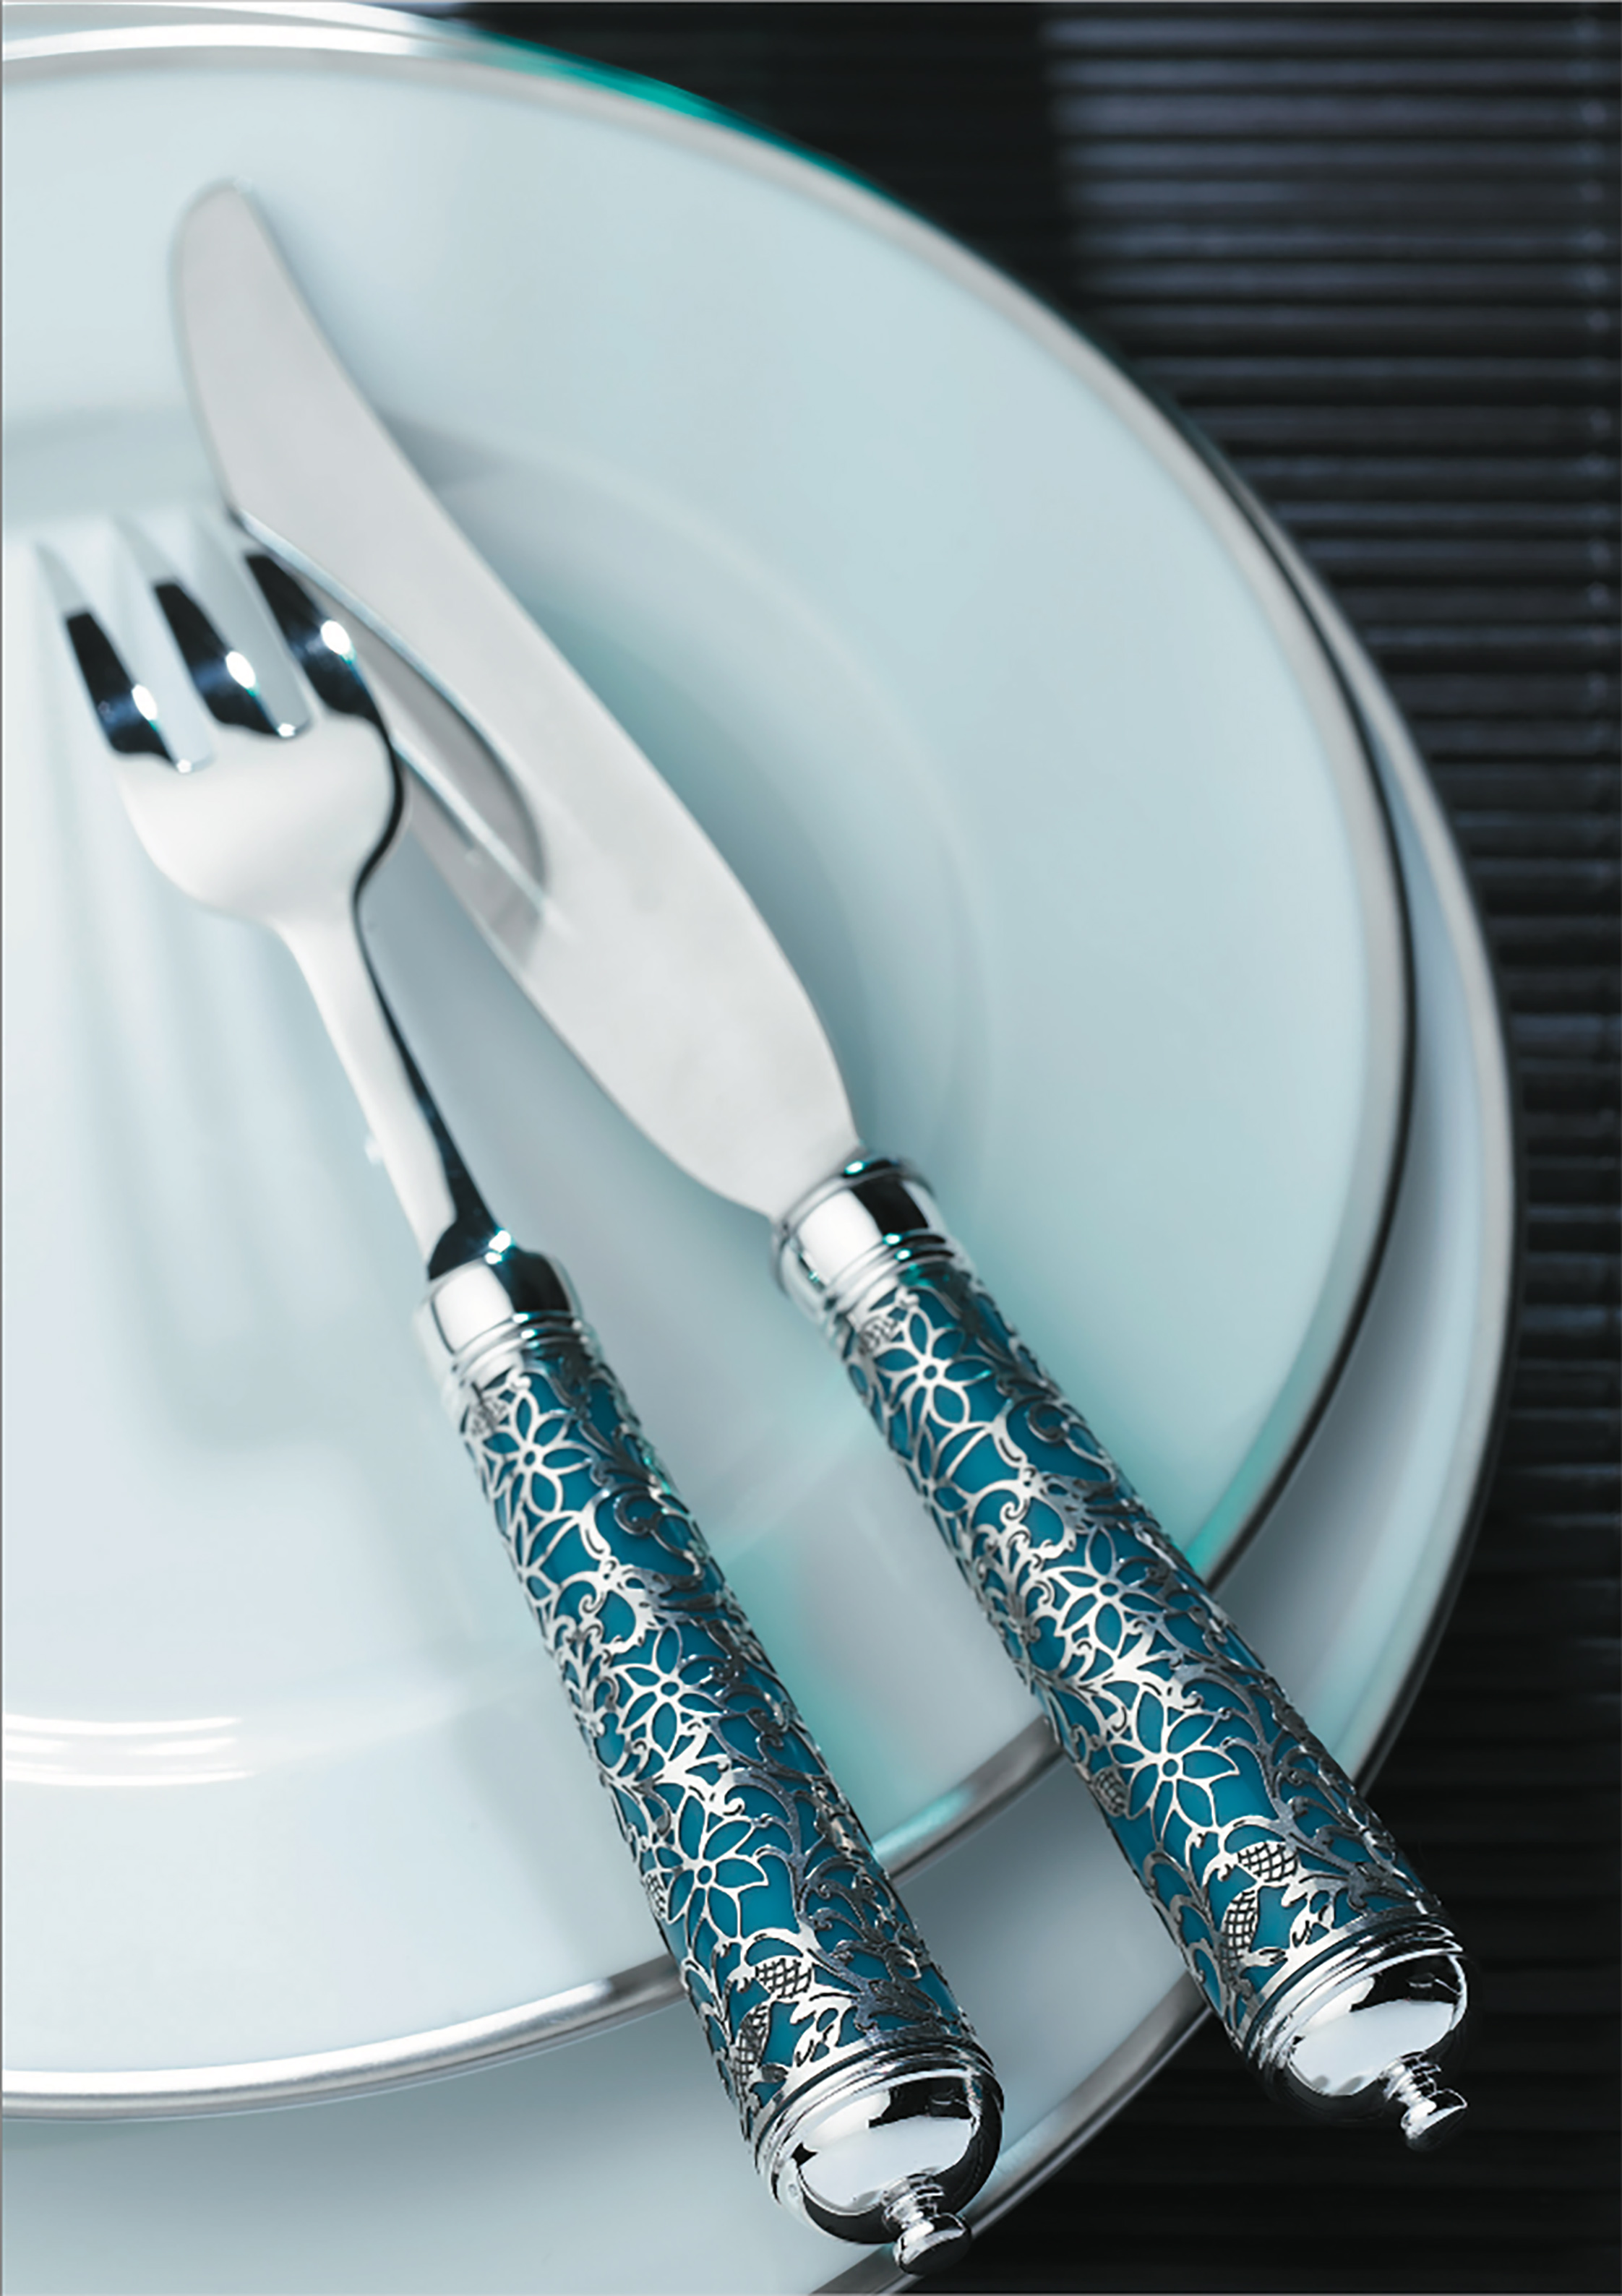 'Insolent' sterling silver cutlery with brightly coloured handles covered in a silver grid of intricate arabesques; Inspired by the Italian Renaissance Ⓒ  Ercuis